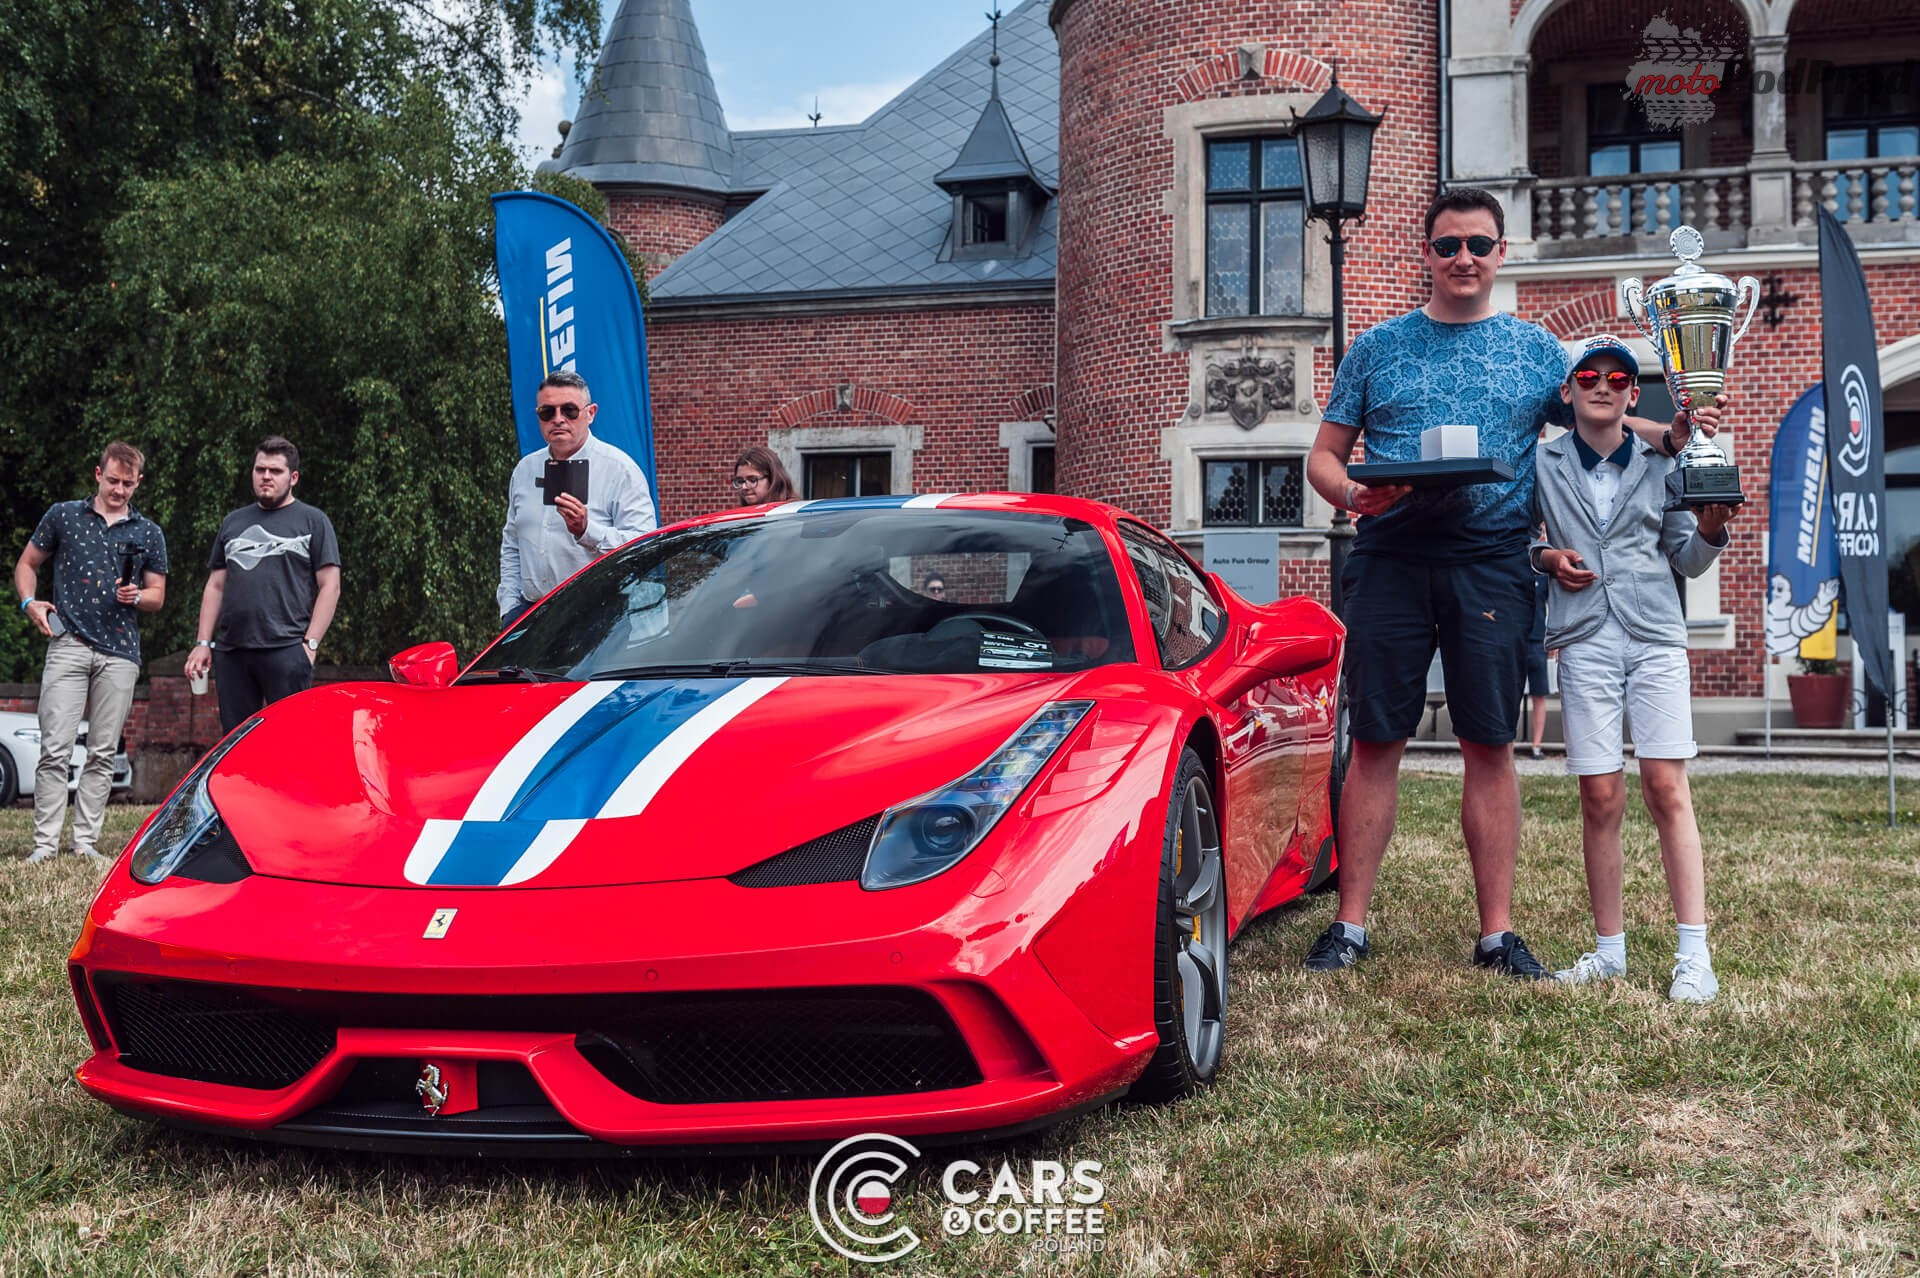 cars and coffee 7 Cars & Coffee Poland – Poznań 2018